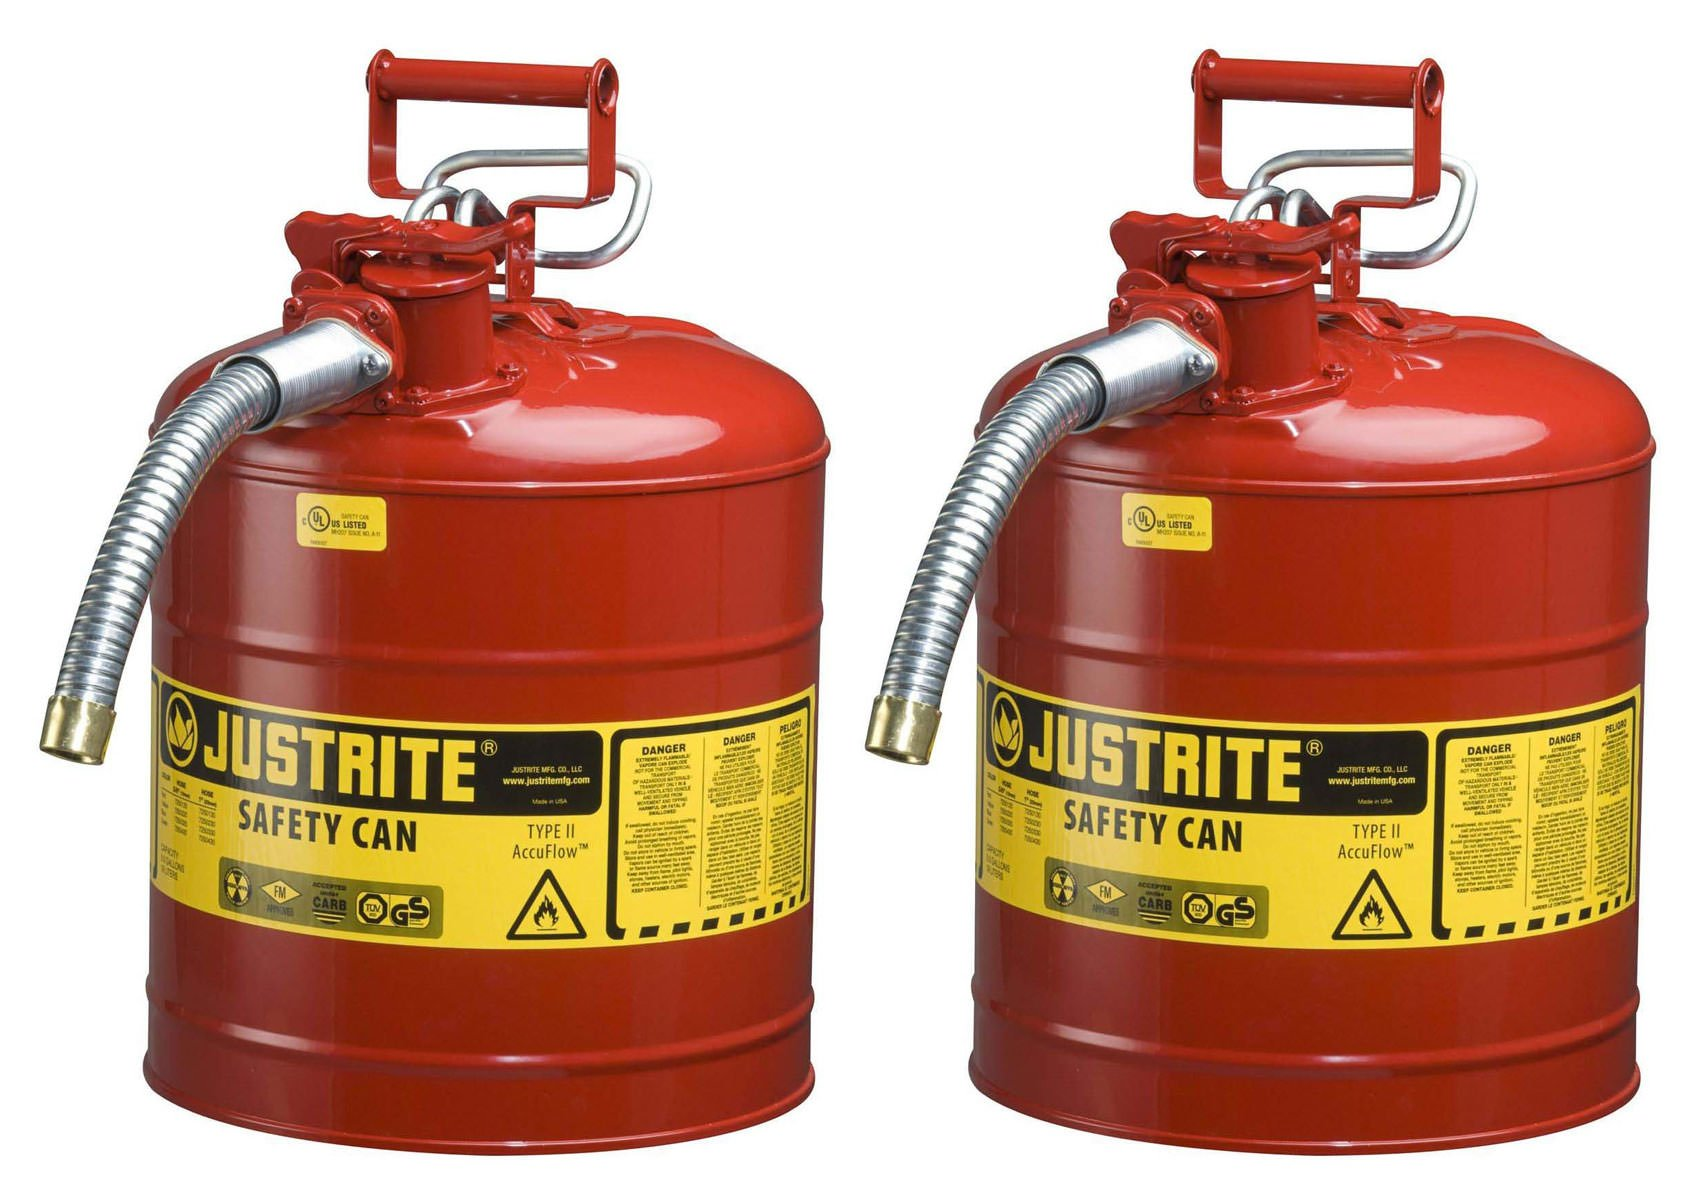 Justrite 7250130 Galvanized Steel, AccuFlow Type II Red Safety Can with 1'' Flexible Spout, Meets OSHA & NFPA For Handling Hazardous liquids, 2 Cans